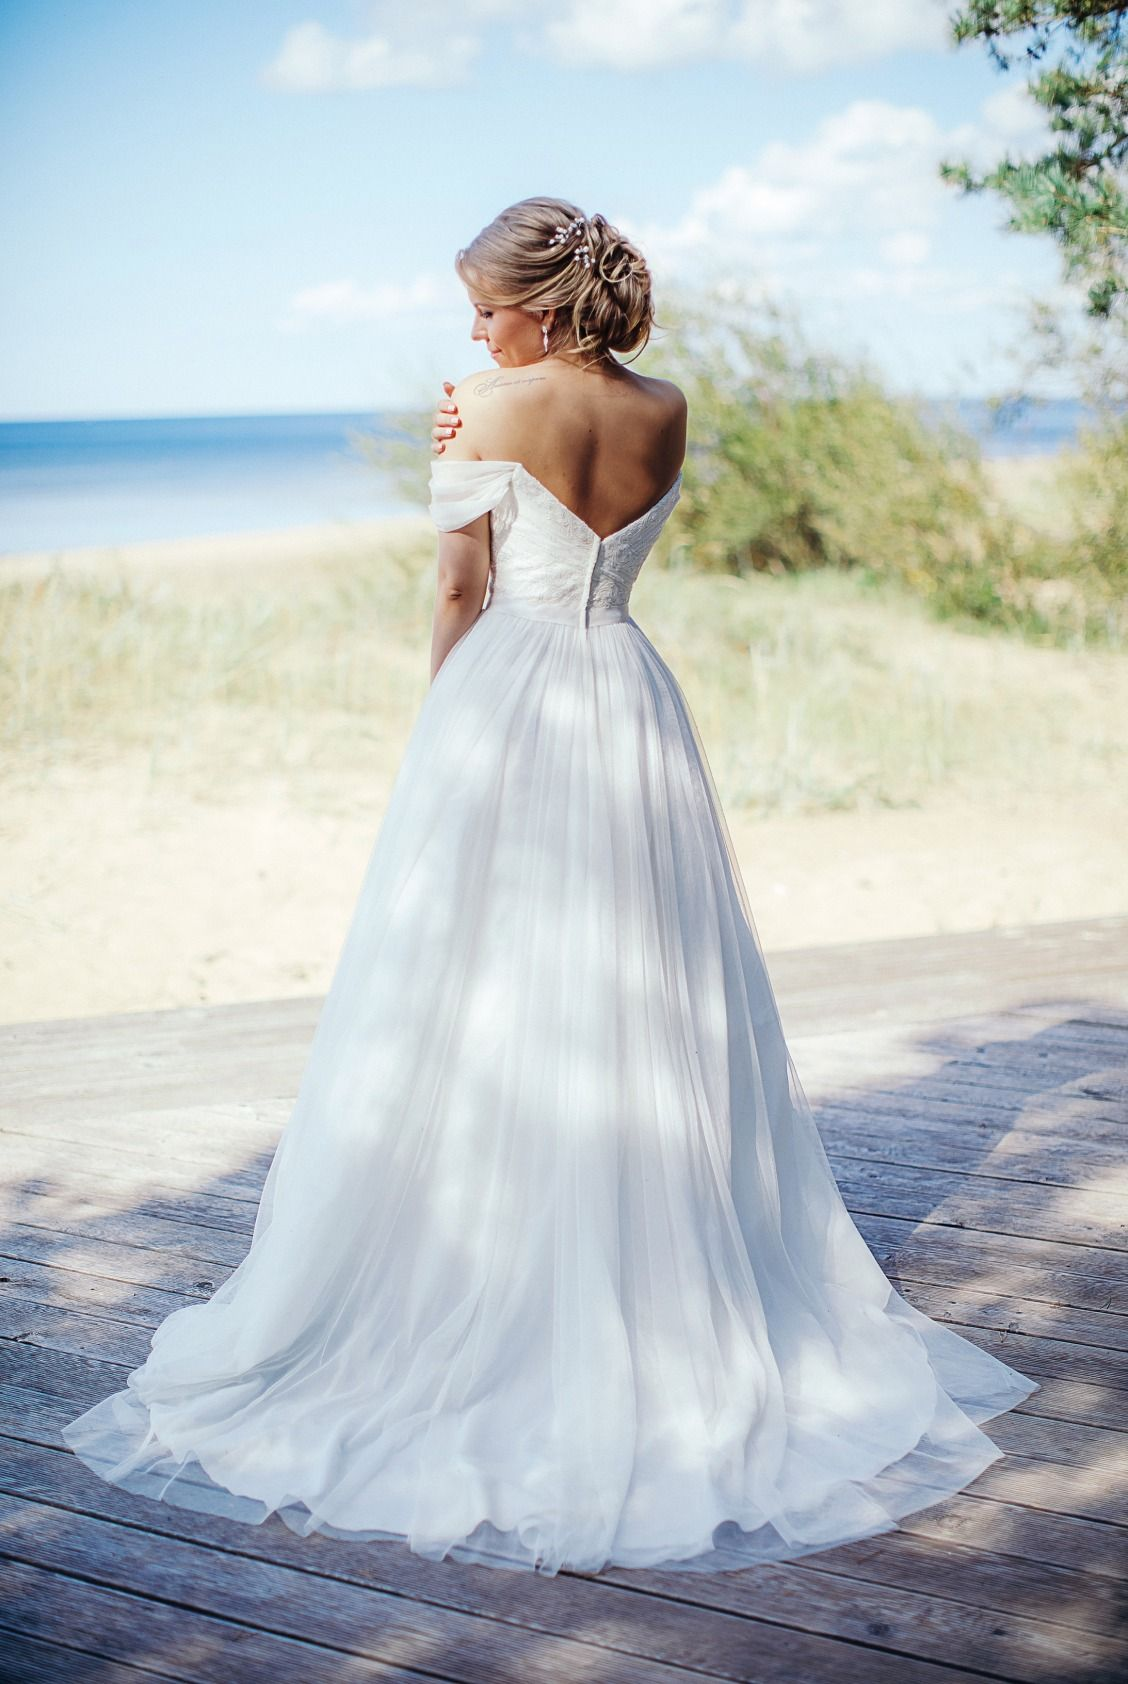 e3052fd57ef5 A ball gown is an unexpected choice for a beach wedding dress...but a  beautiful one! Get more inspiration for your seaside nuptials at  davidsbridal.com blog ...